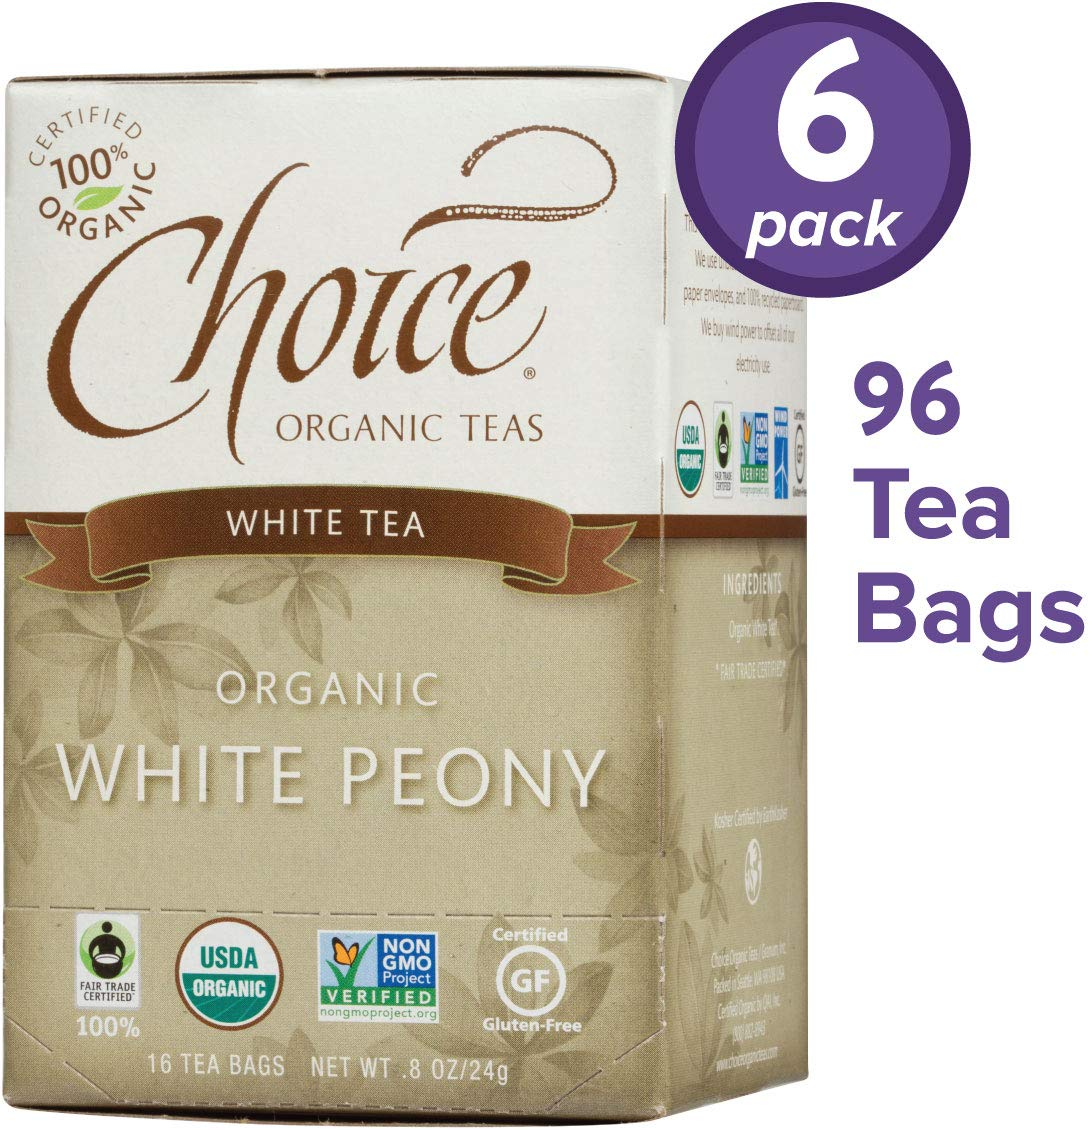 Choice Organic Teas White Tea, 6 Boxes of 16 (96 Tea Bags), White Peony by Choice Organic Teas